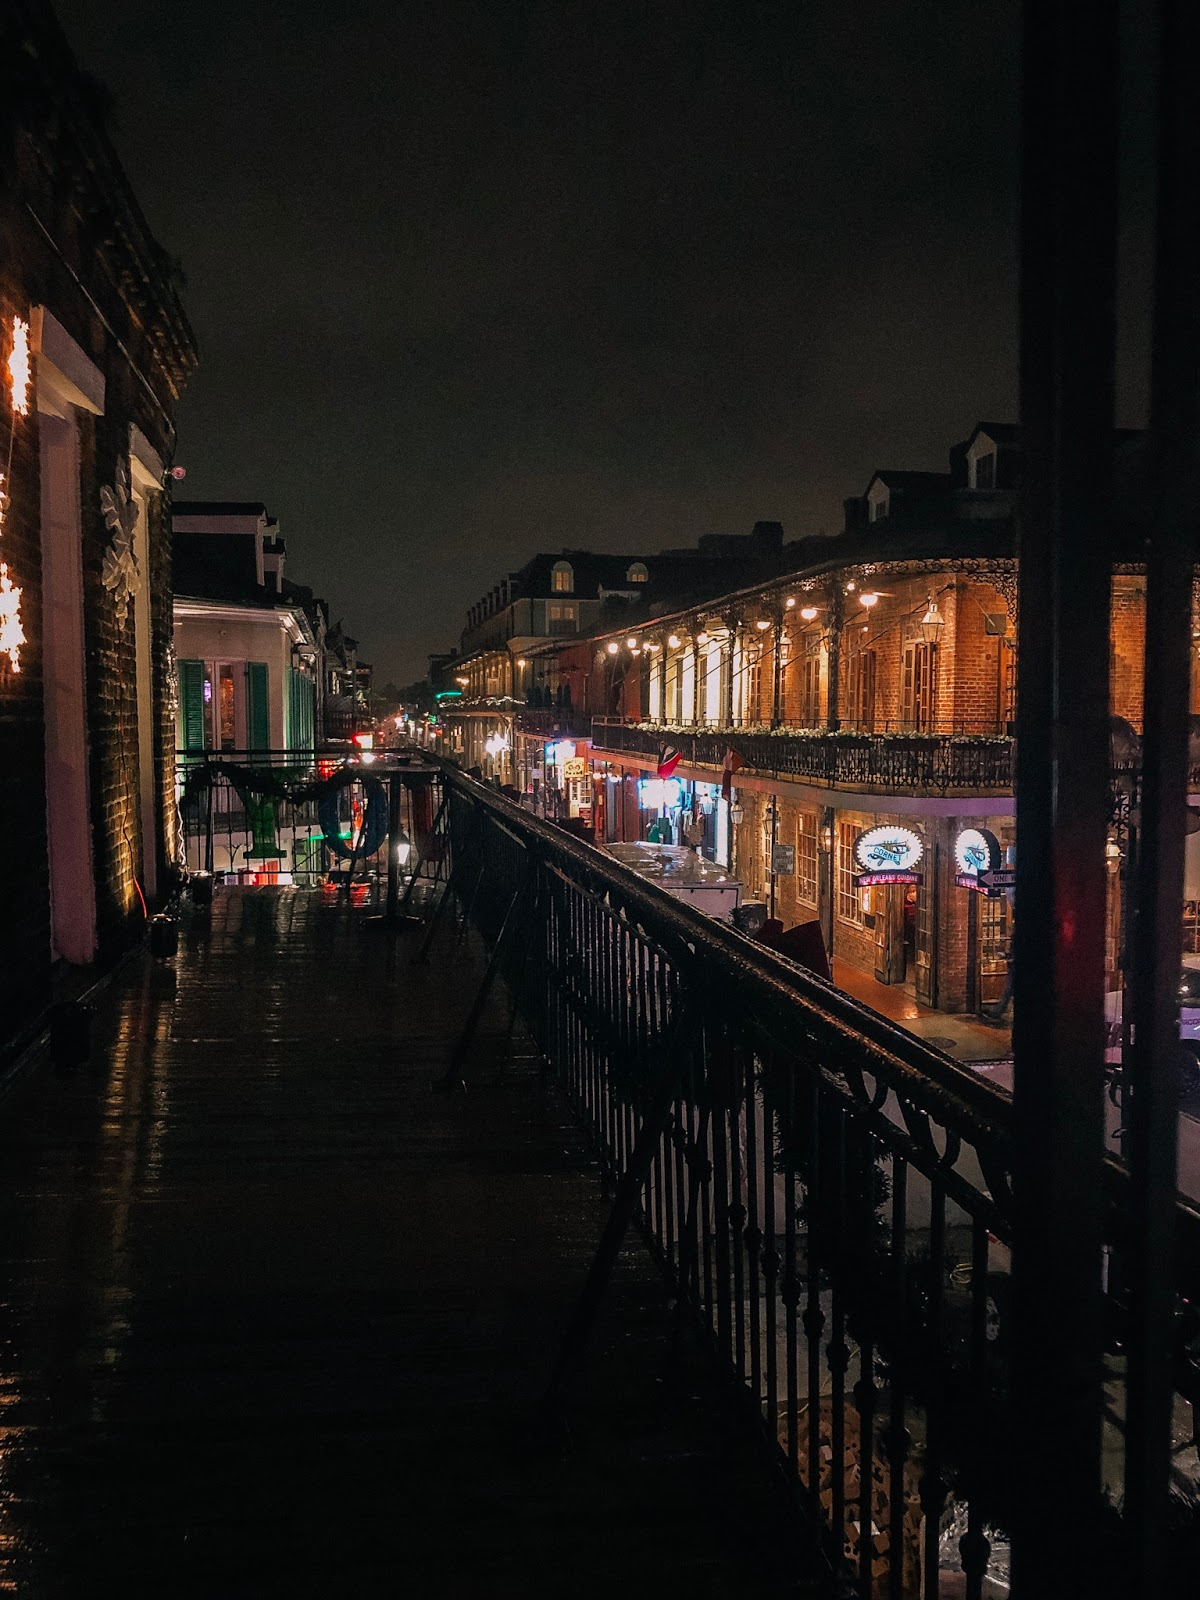 Night view of Bourbon Street lit up in New Orleans